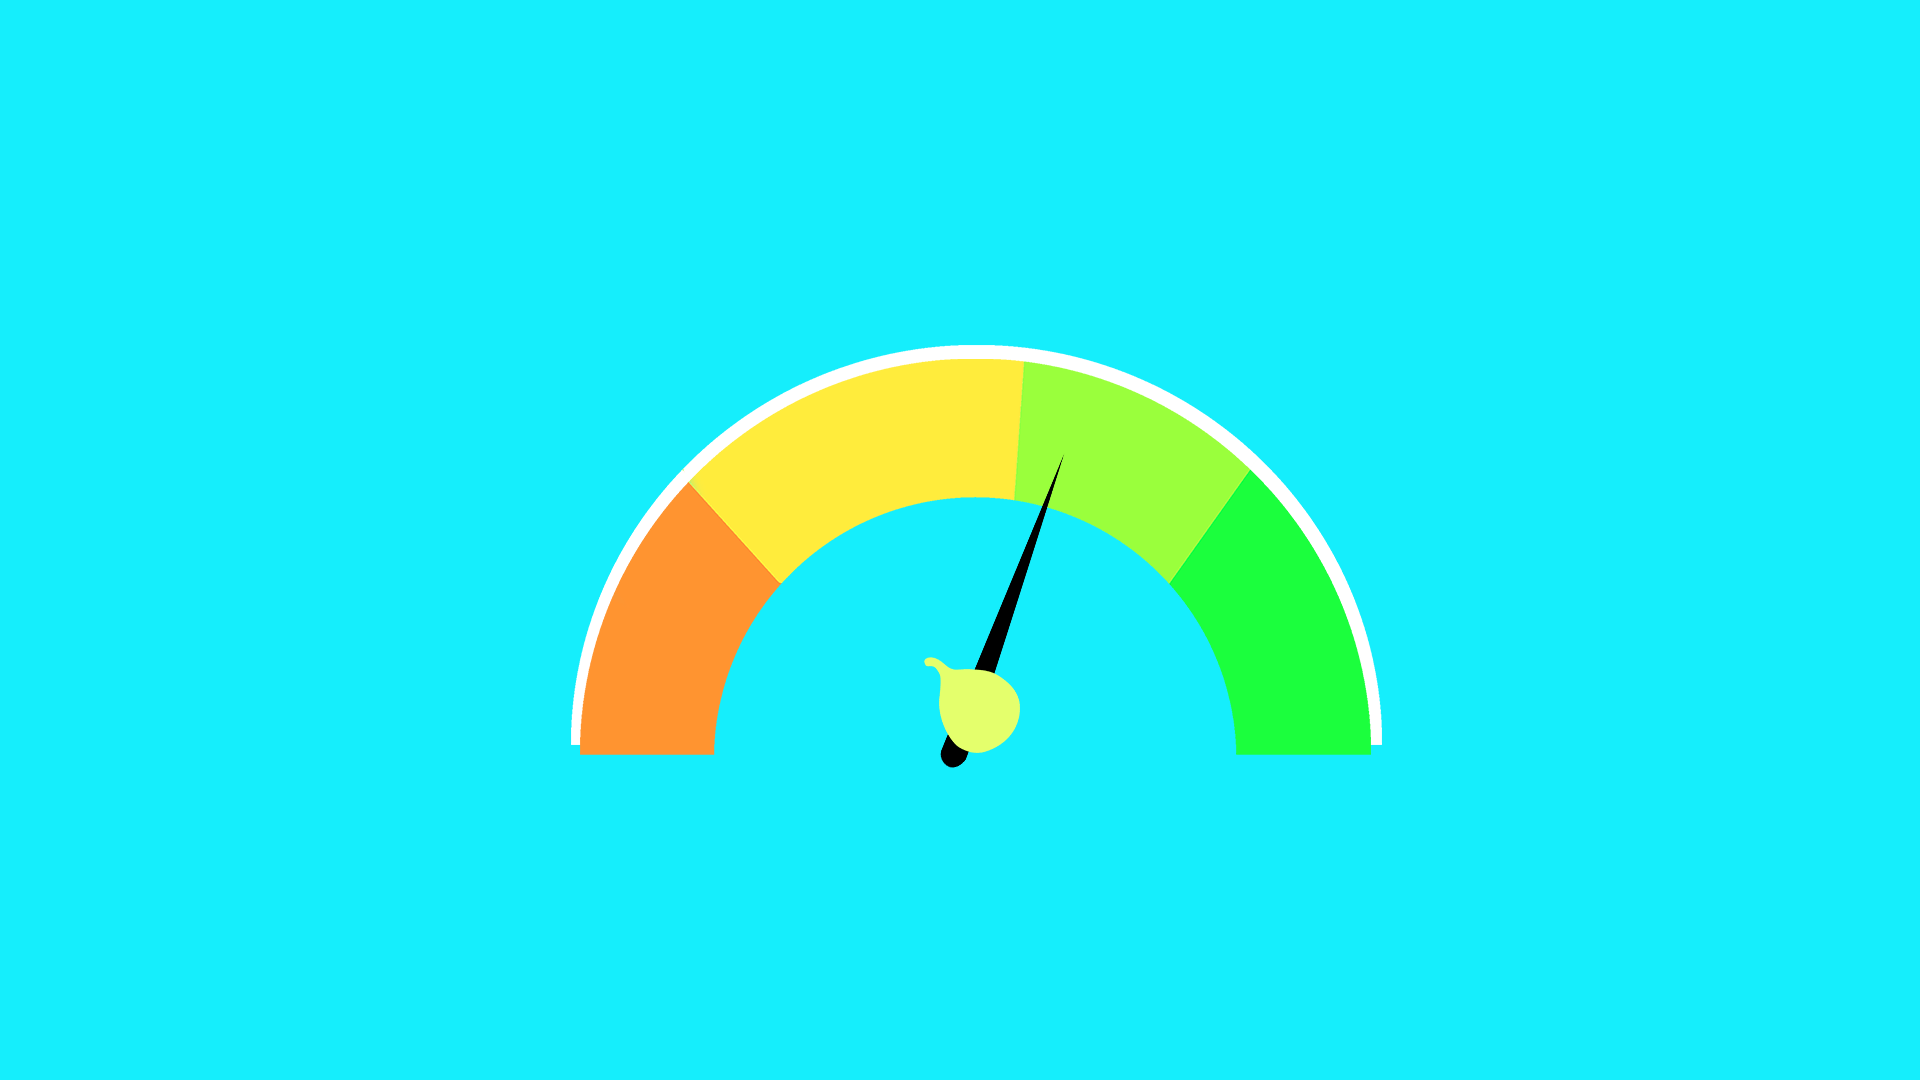 Credit_Score_Wheel.png